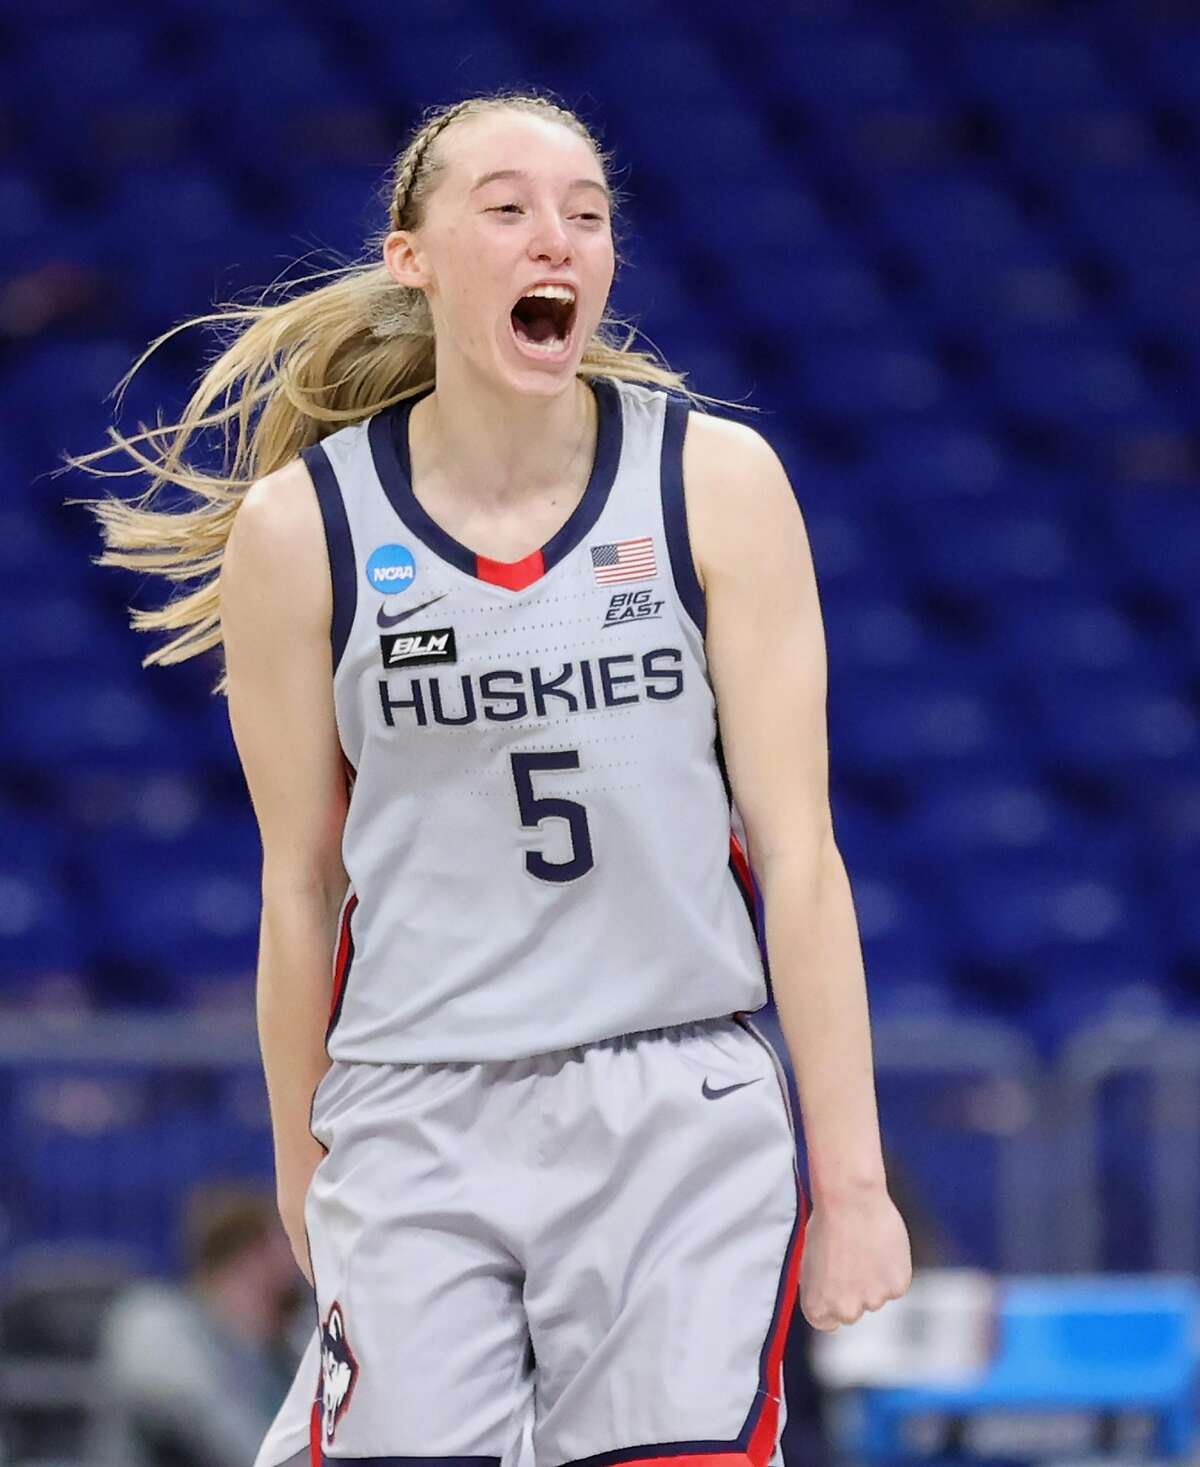 SAN ANTONIO, TEXAS - MARCH 23: Paige Bueckers #5 of the UConn Huskies reacts against the Syracuse Orange during the second half in the second round game of the 2021 NCAA Women's Basketball Tournament at the Alamodome on March 23, 2021 in San Antonio, Texas. (Photo by Carmen Mandato/Getty Images)